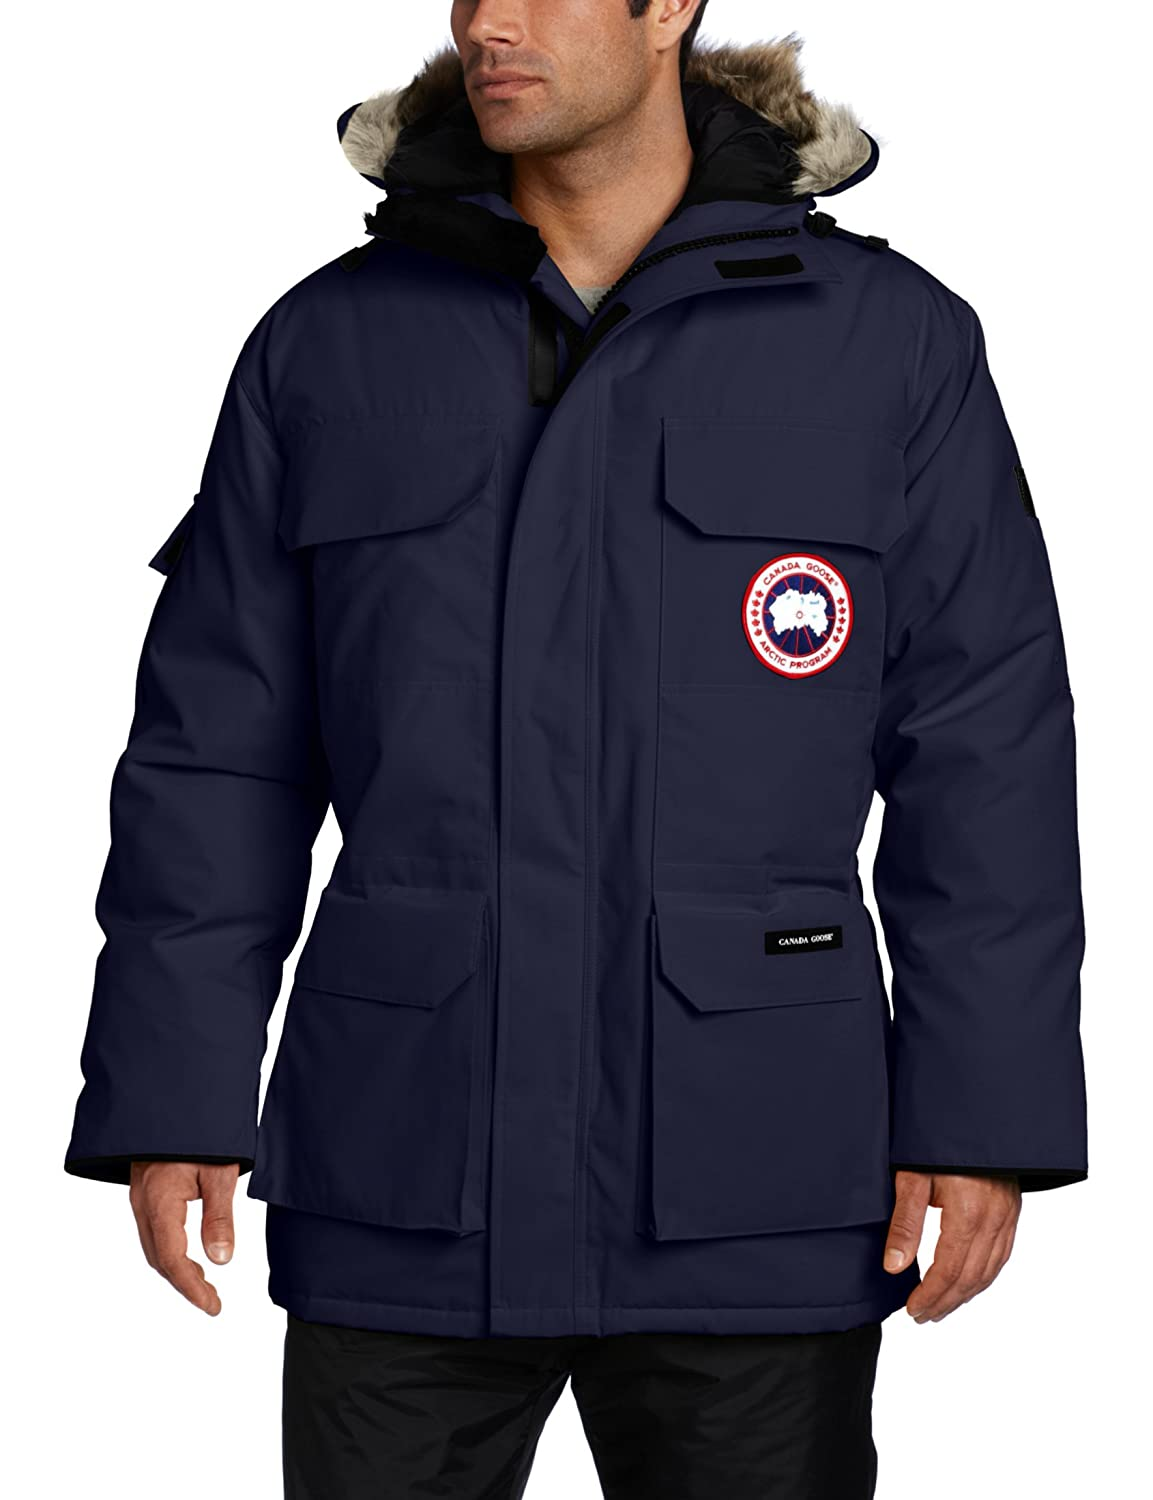 canada goose mens jacket price